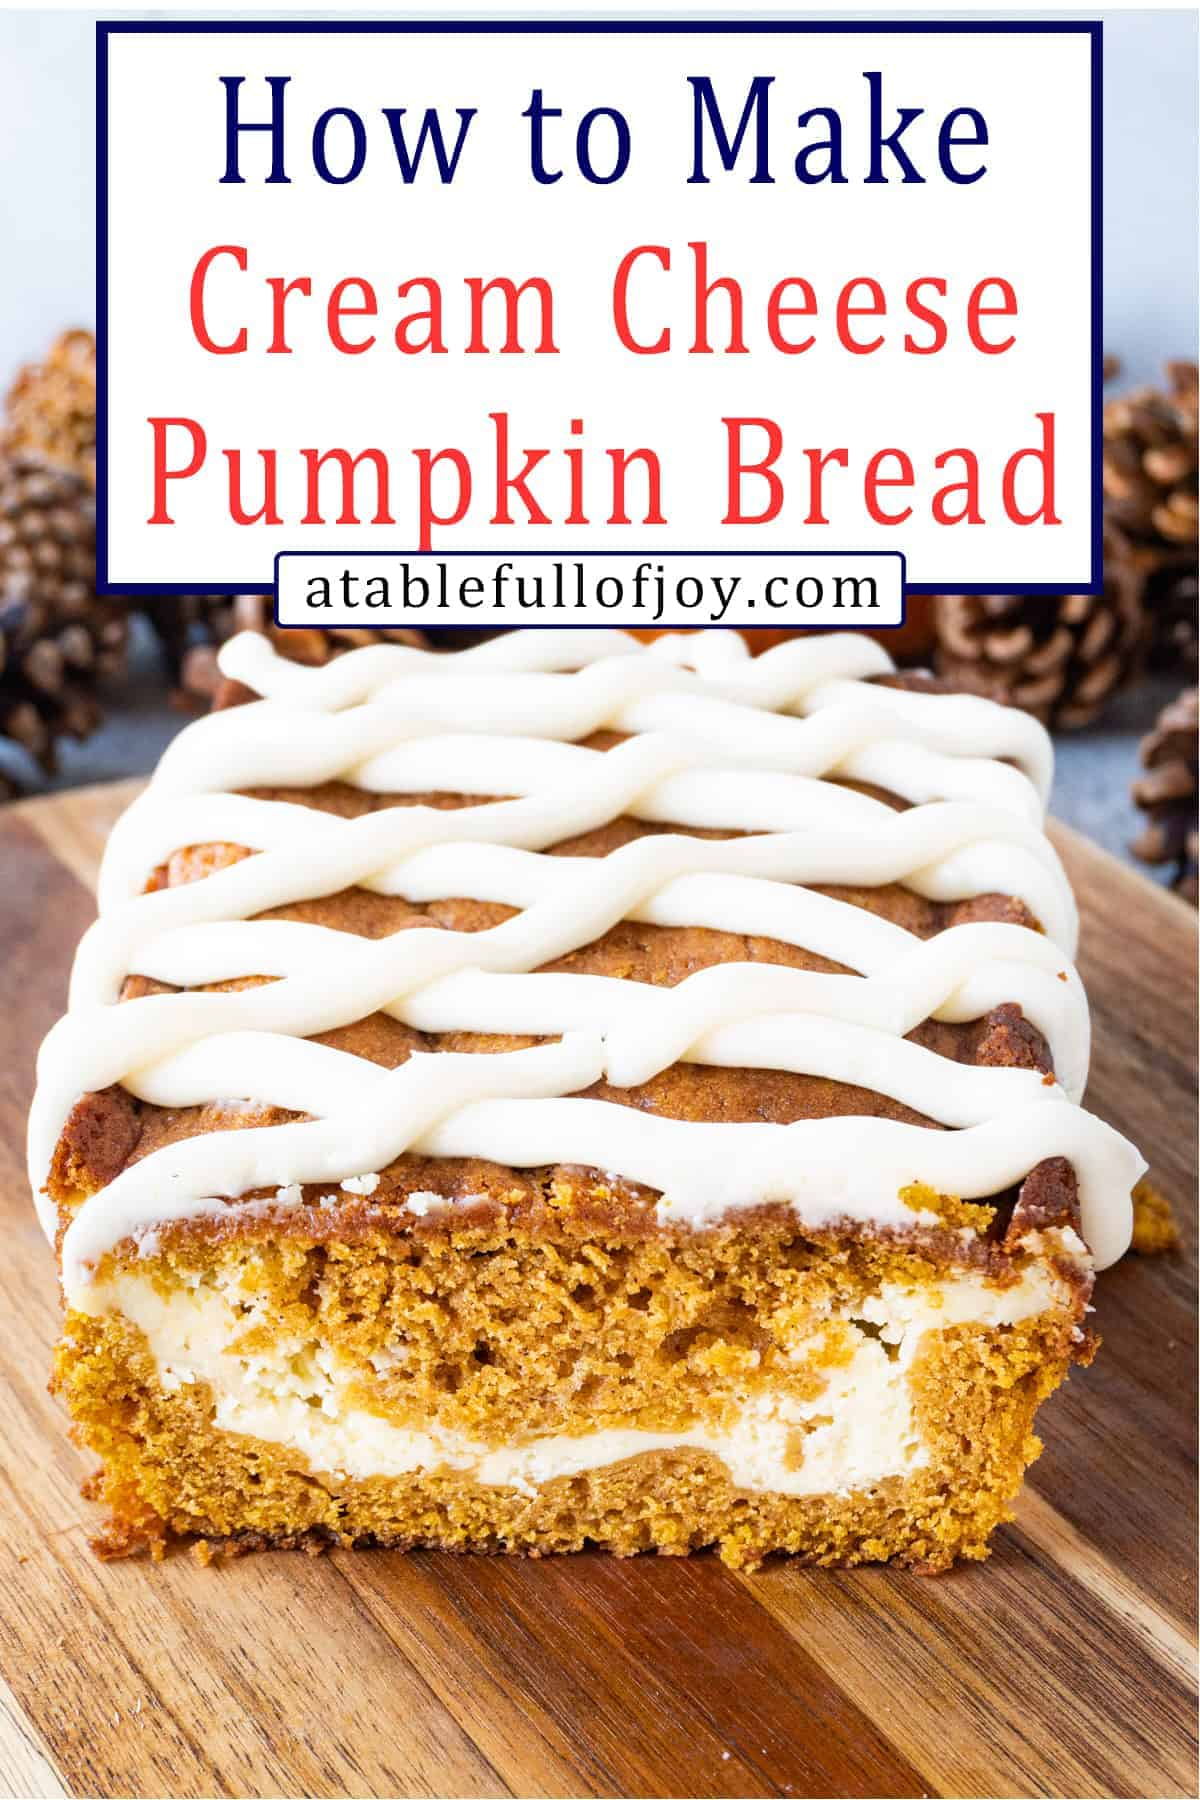 Pumpkin Bread pinterest image